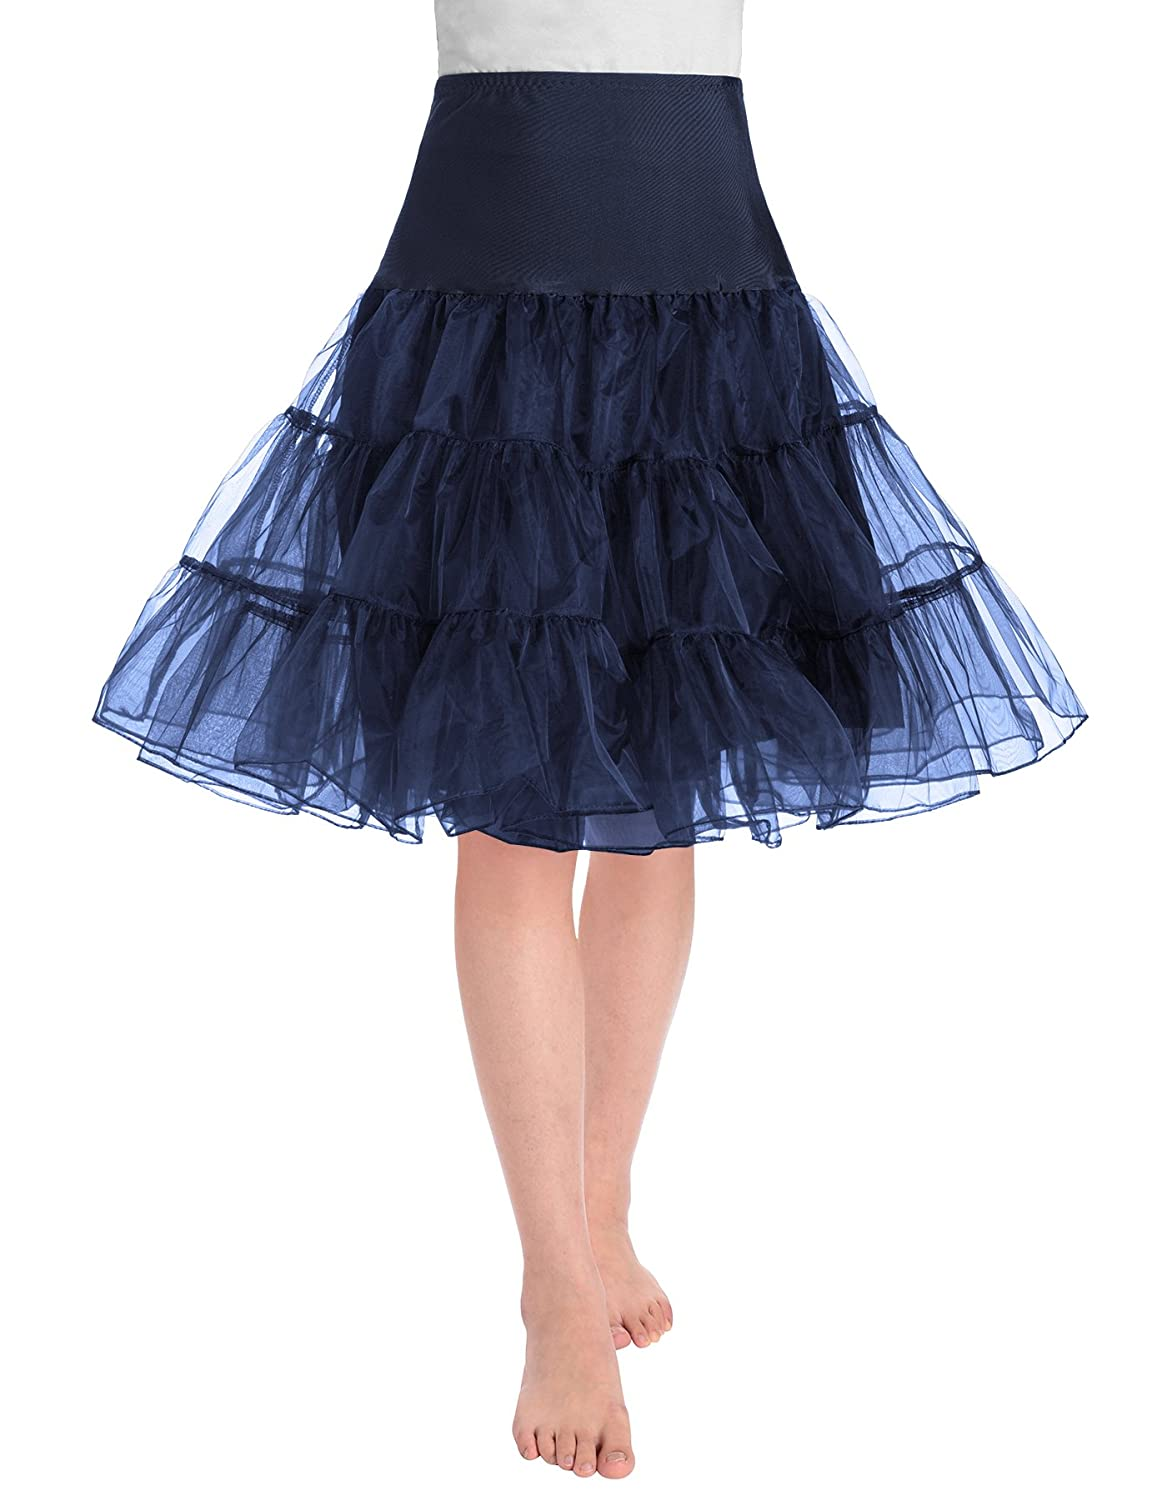 This JustinCostume's rockabilly petticoat skirt is mainly suitable for  women, or teen girls. It is a petticoat skirt, perfect to wear under dress  or skirt, ...